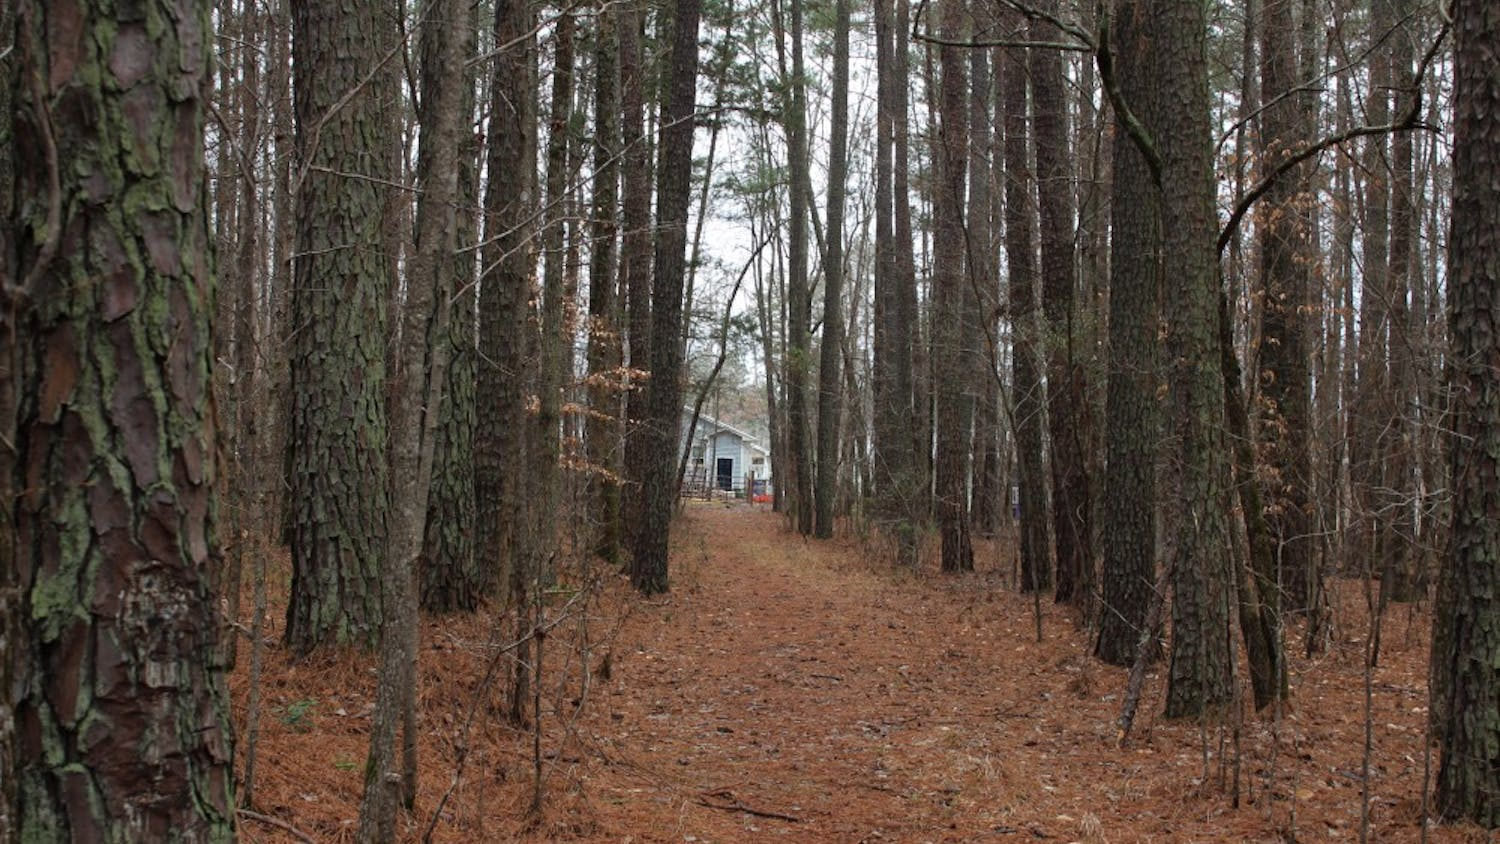 The Greene Tract is an undeveloped 164 acre property north of Chapel Hill on Sunday, Feb. 17, 2019.